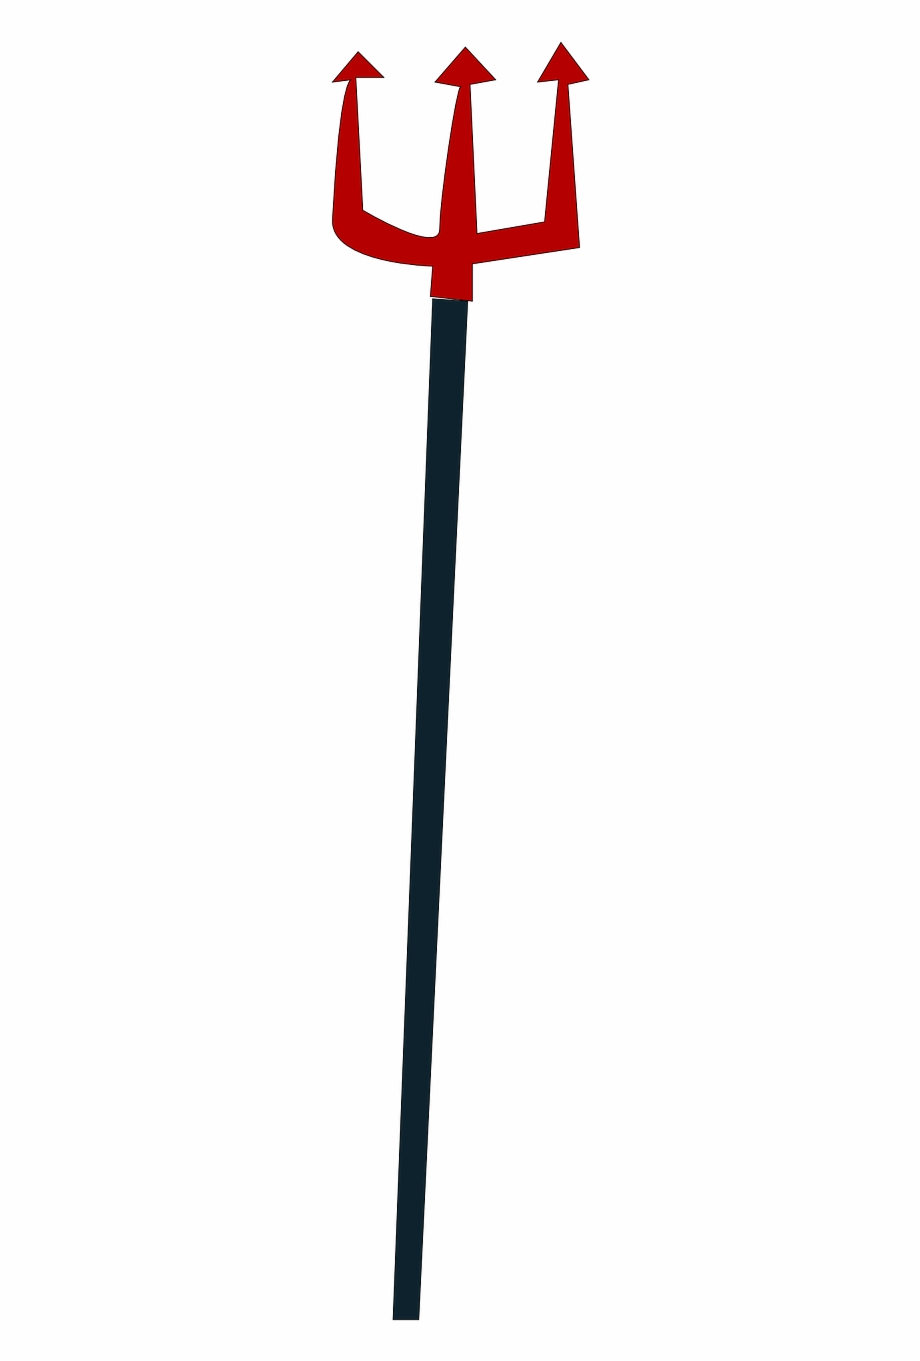 Tool png image free. Trident clipart devil pitchfork